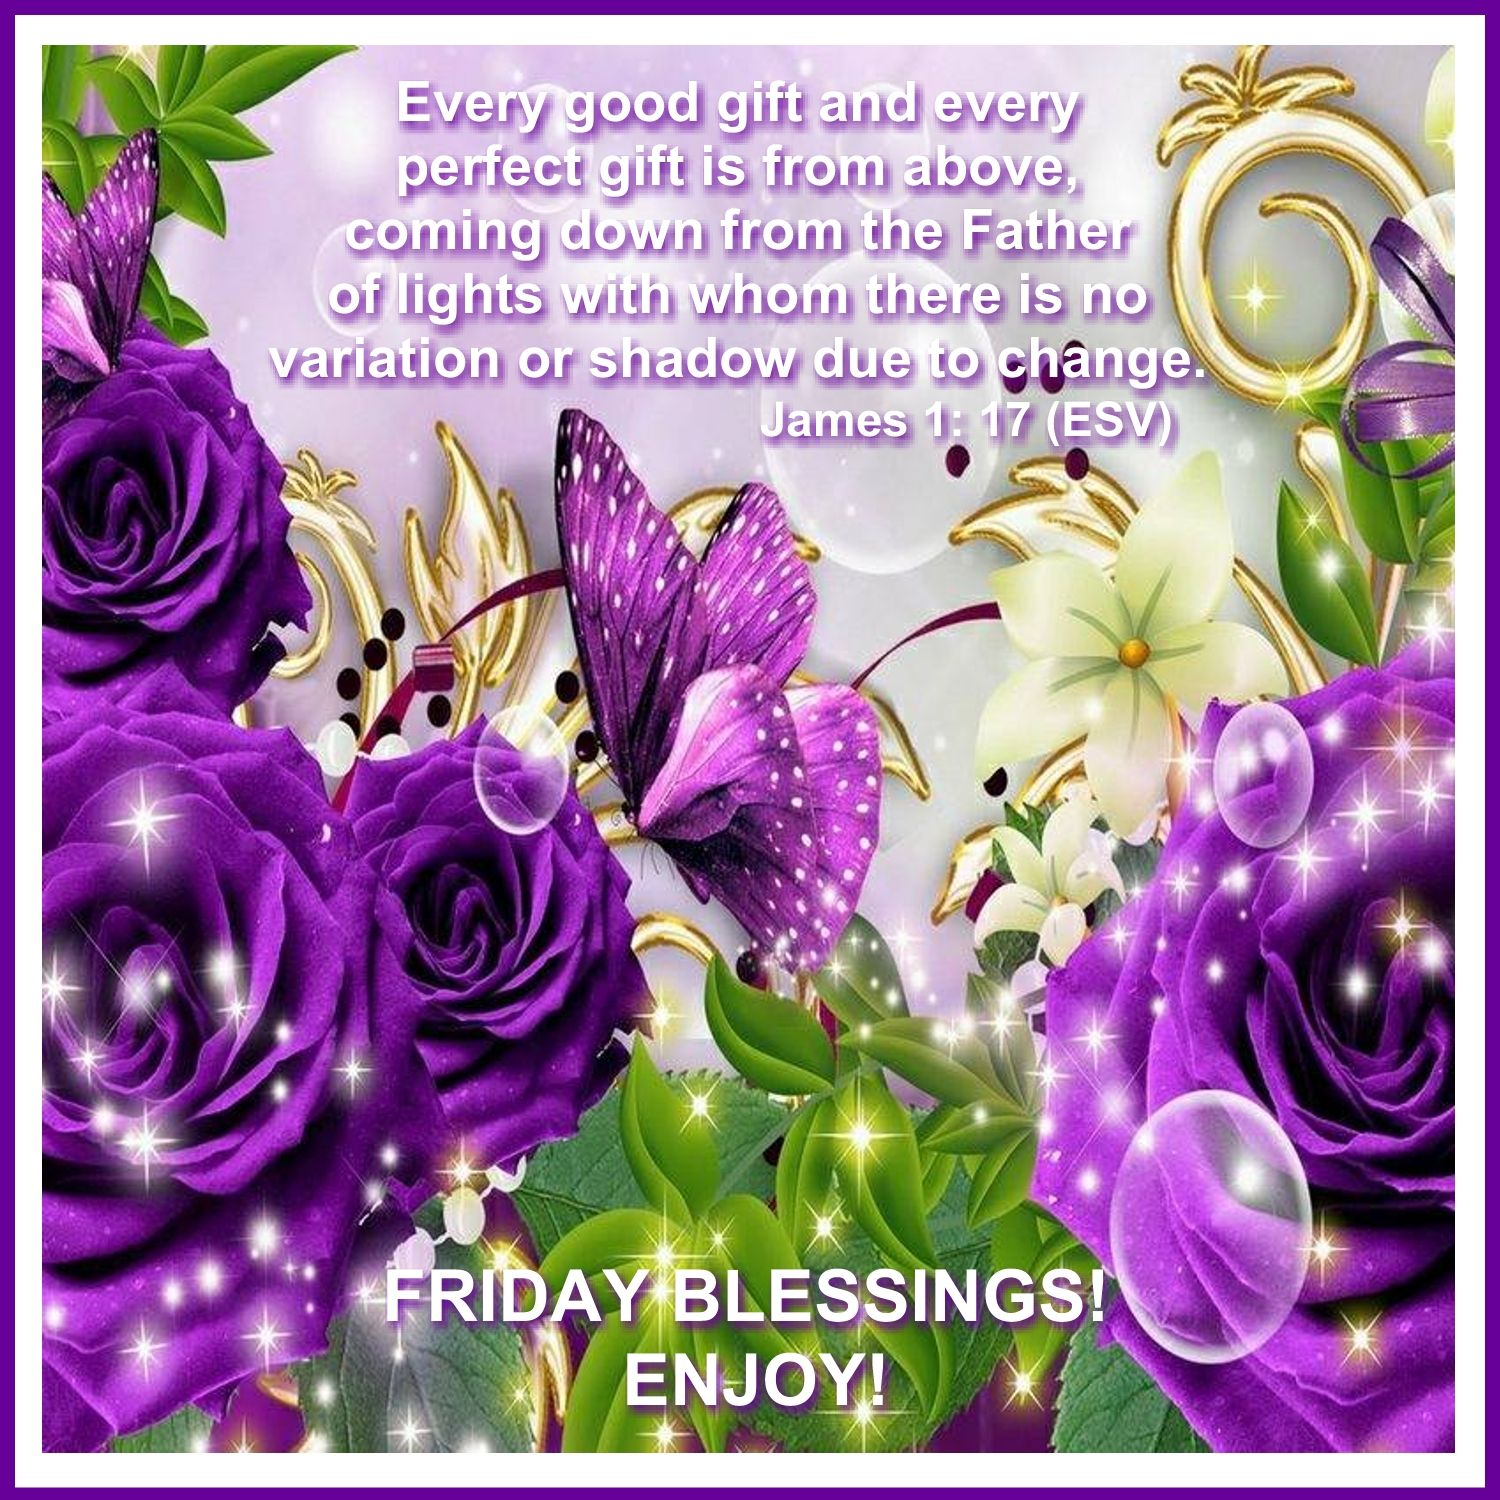 Pin by Rosa Well on FRIDAY BLESSINGS Purple roses